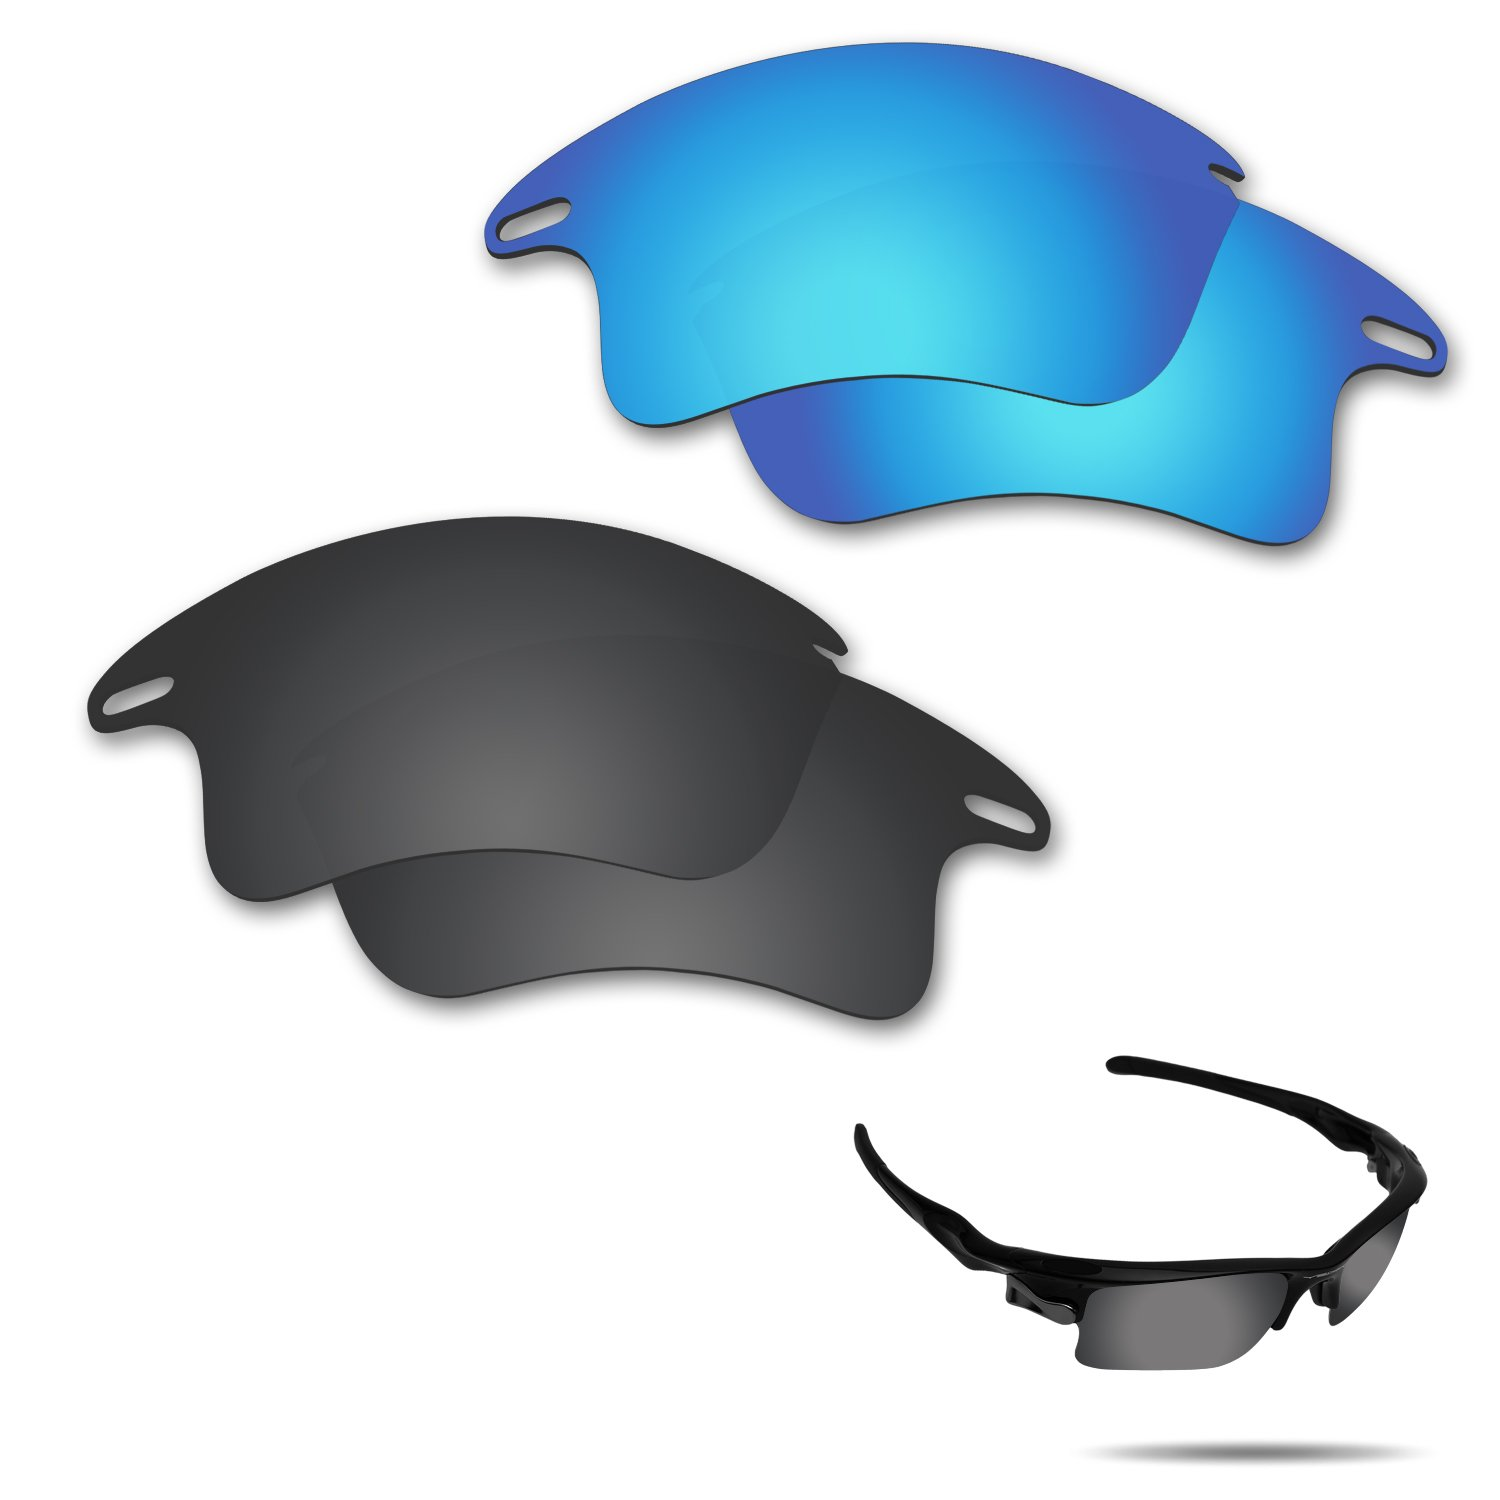 Fiskr Anti-Saltwater Polarized Replacement Lenses for Oakley Fast Jacket XL Sunglasses 2 Pairs Packed (Stealth Black & Ice Blue)